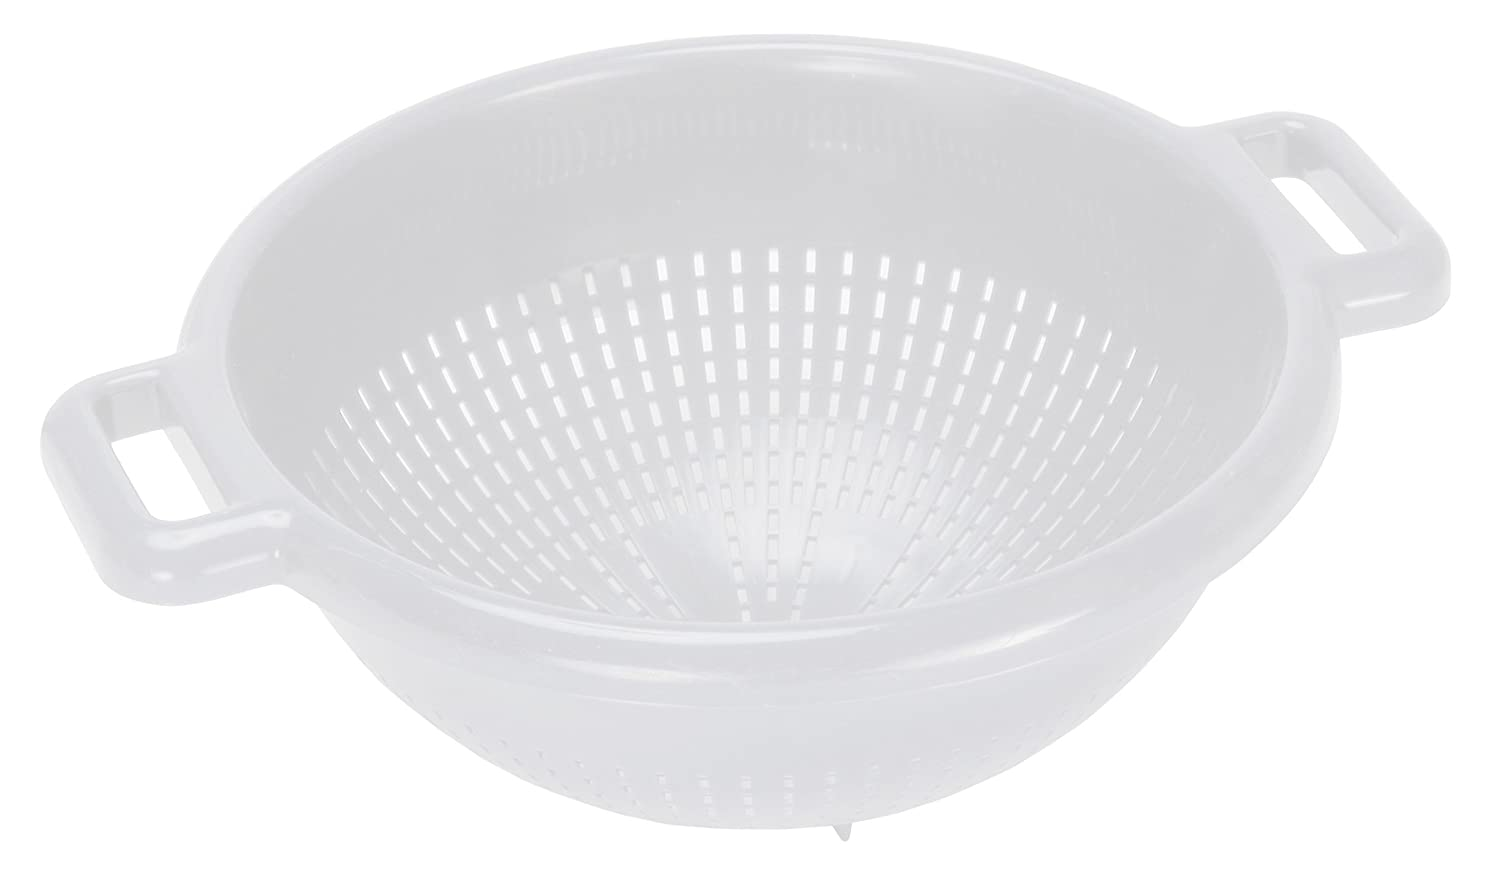 Curver 175218 Colander with Feet – White, 26 x 31 x 12 cm